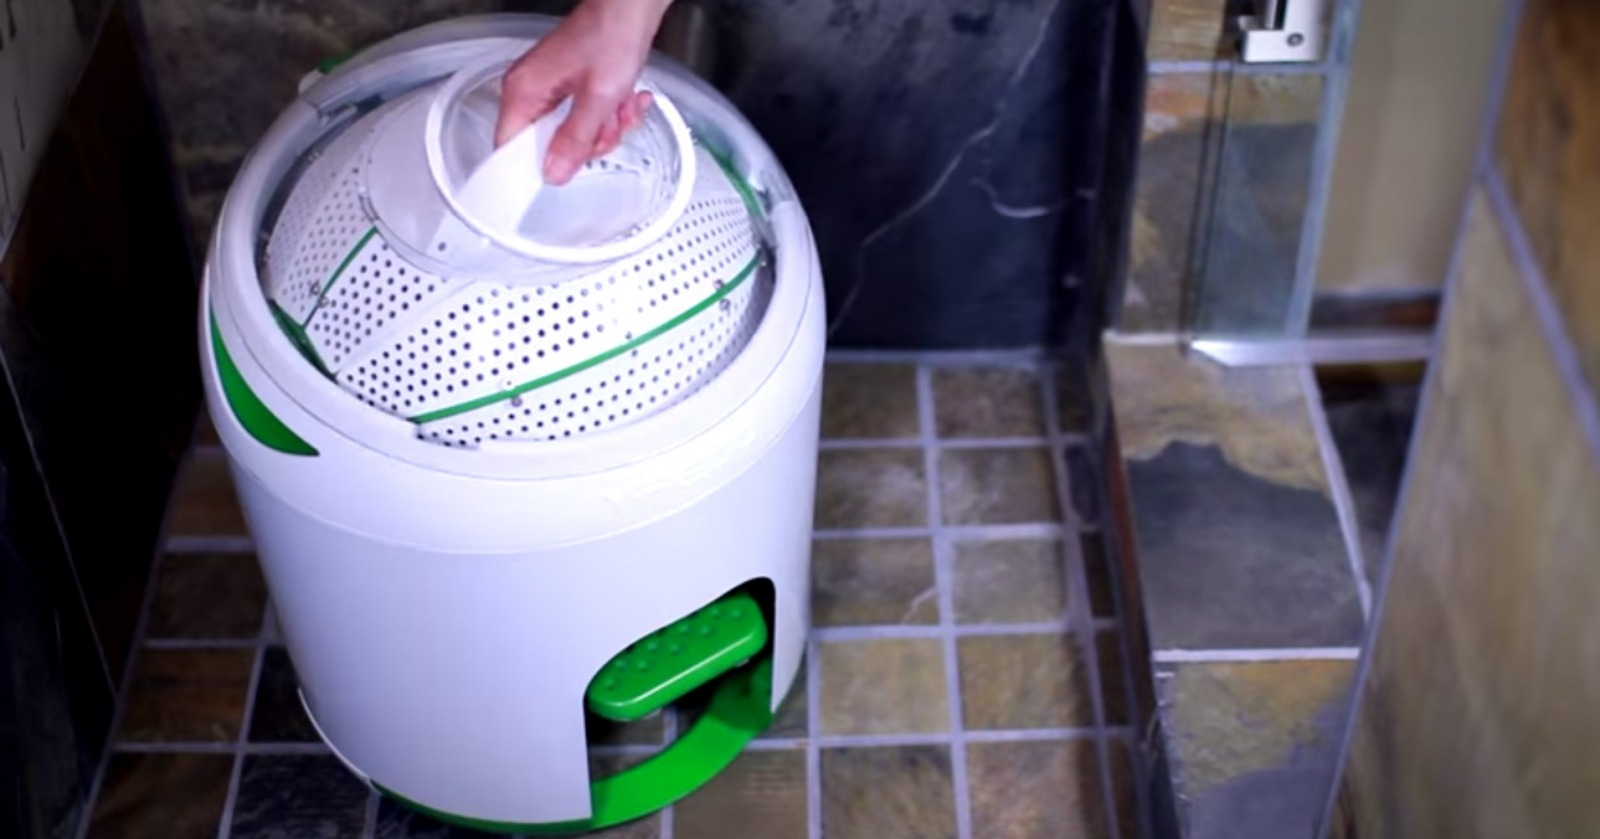 yrigo-drumi-foot-powered-washing-machine-03